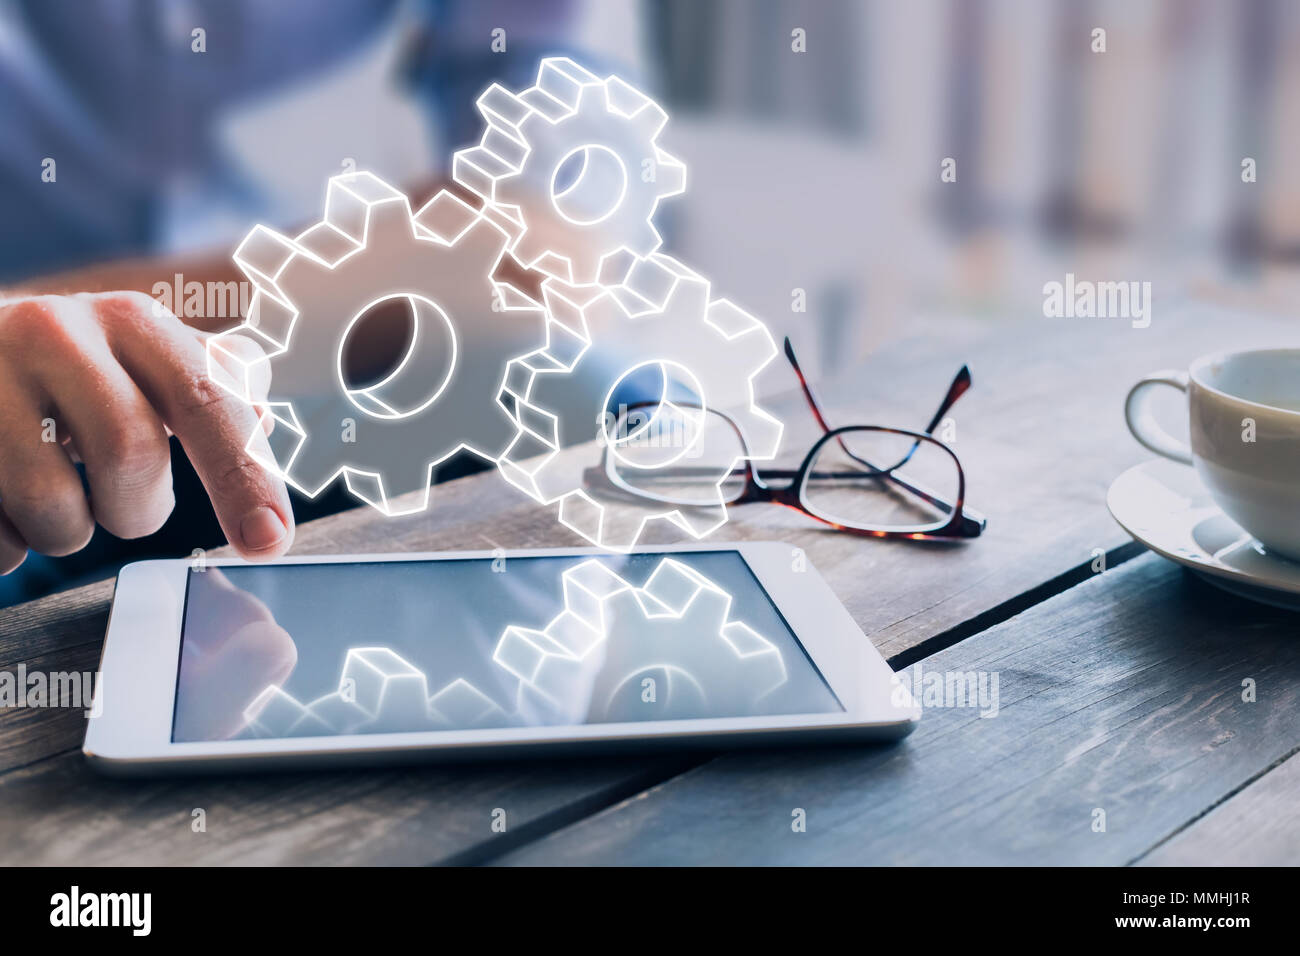 Business process management automation concept using internet technology and ERP (Enterprise Resource Planning) to improve productivity and efficiency - Stock Image